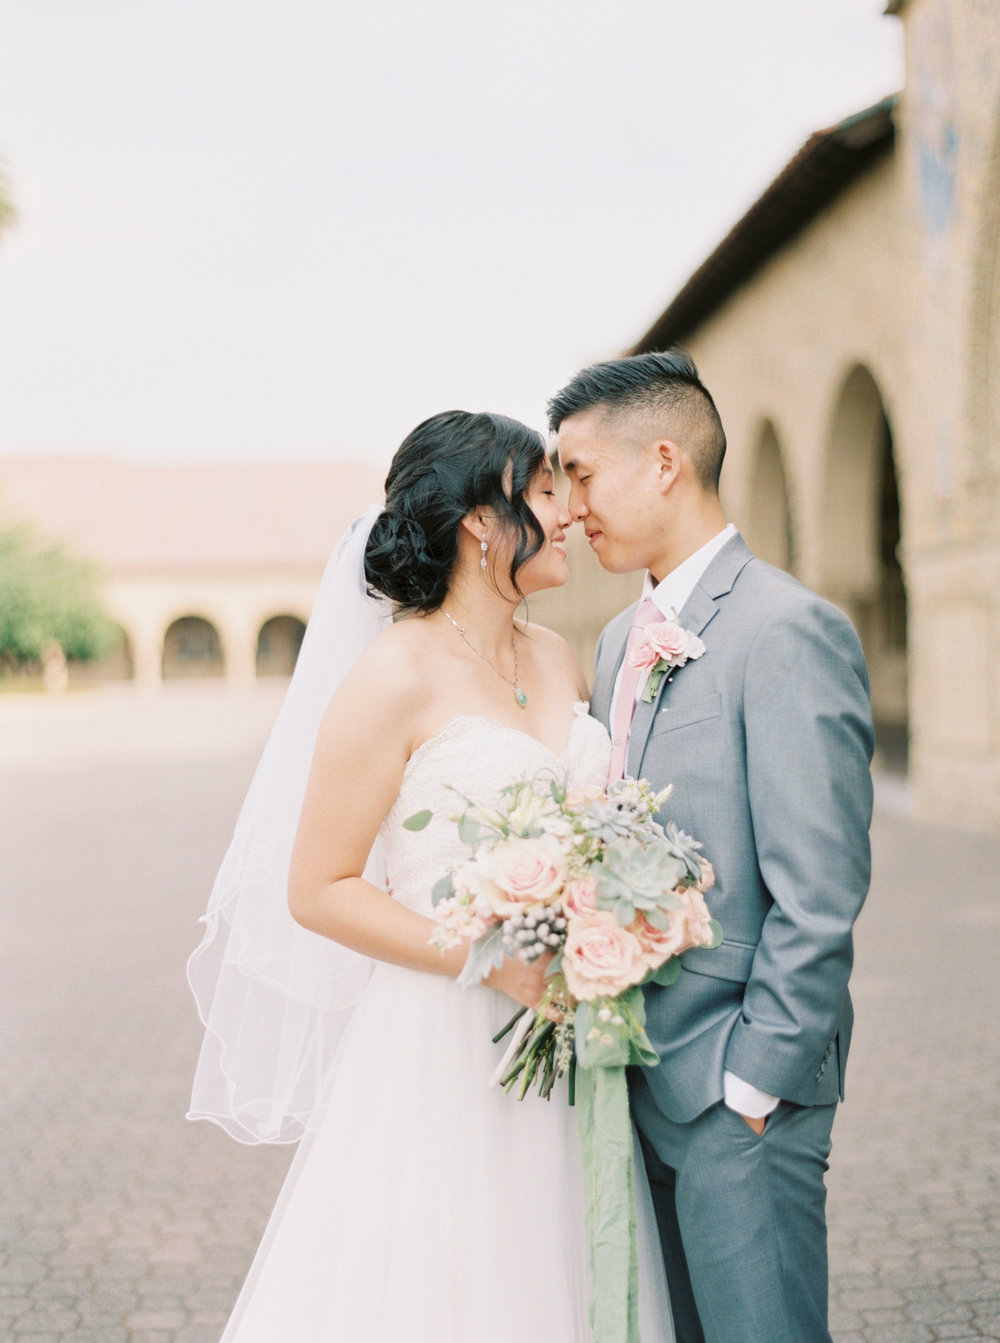 trynhphoto_wedding_photography_Standford_PaloAlto_SF_BayArea_Destination_OC_HA-18.jpg